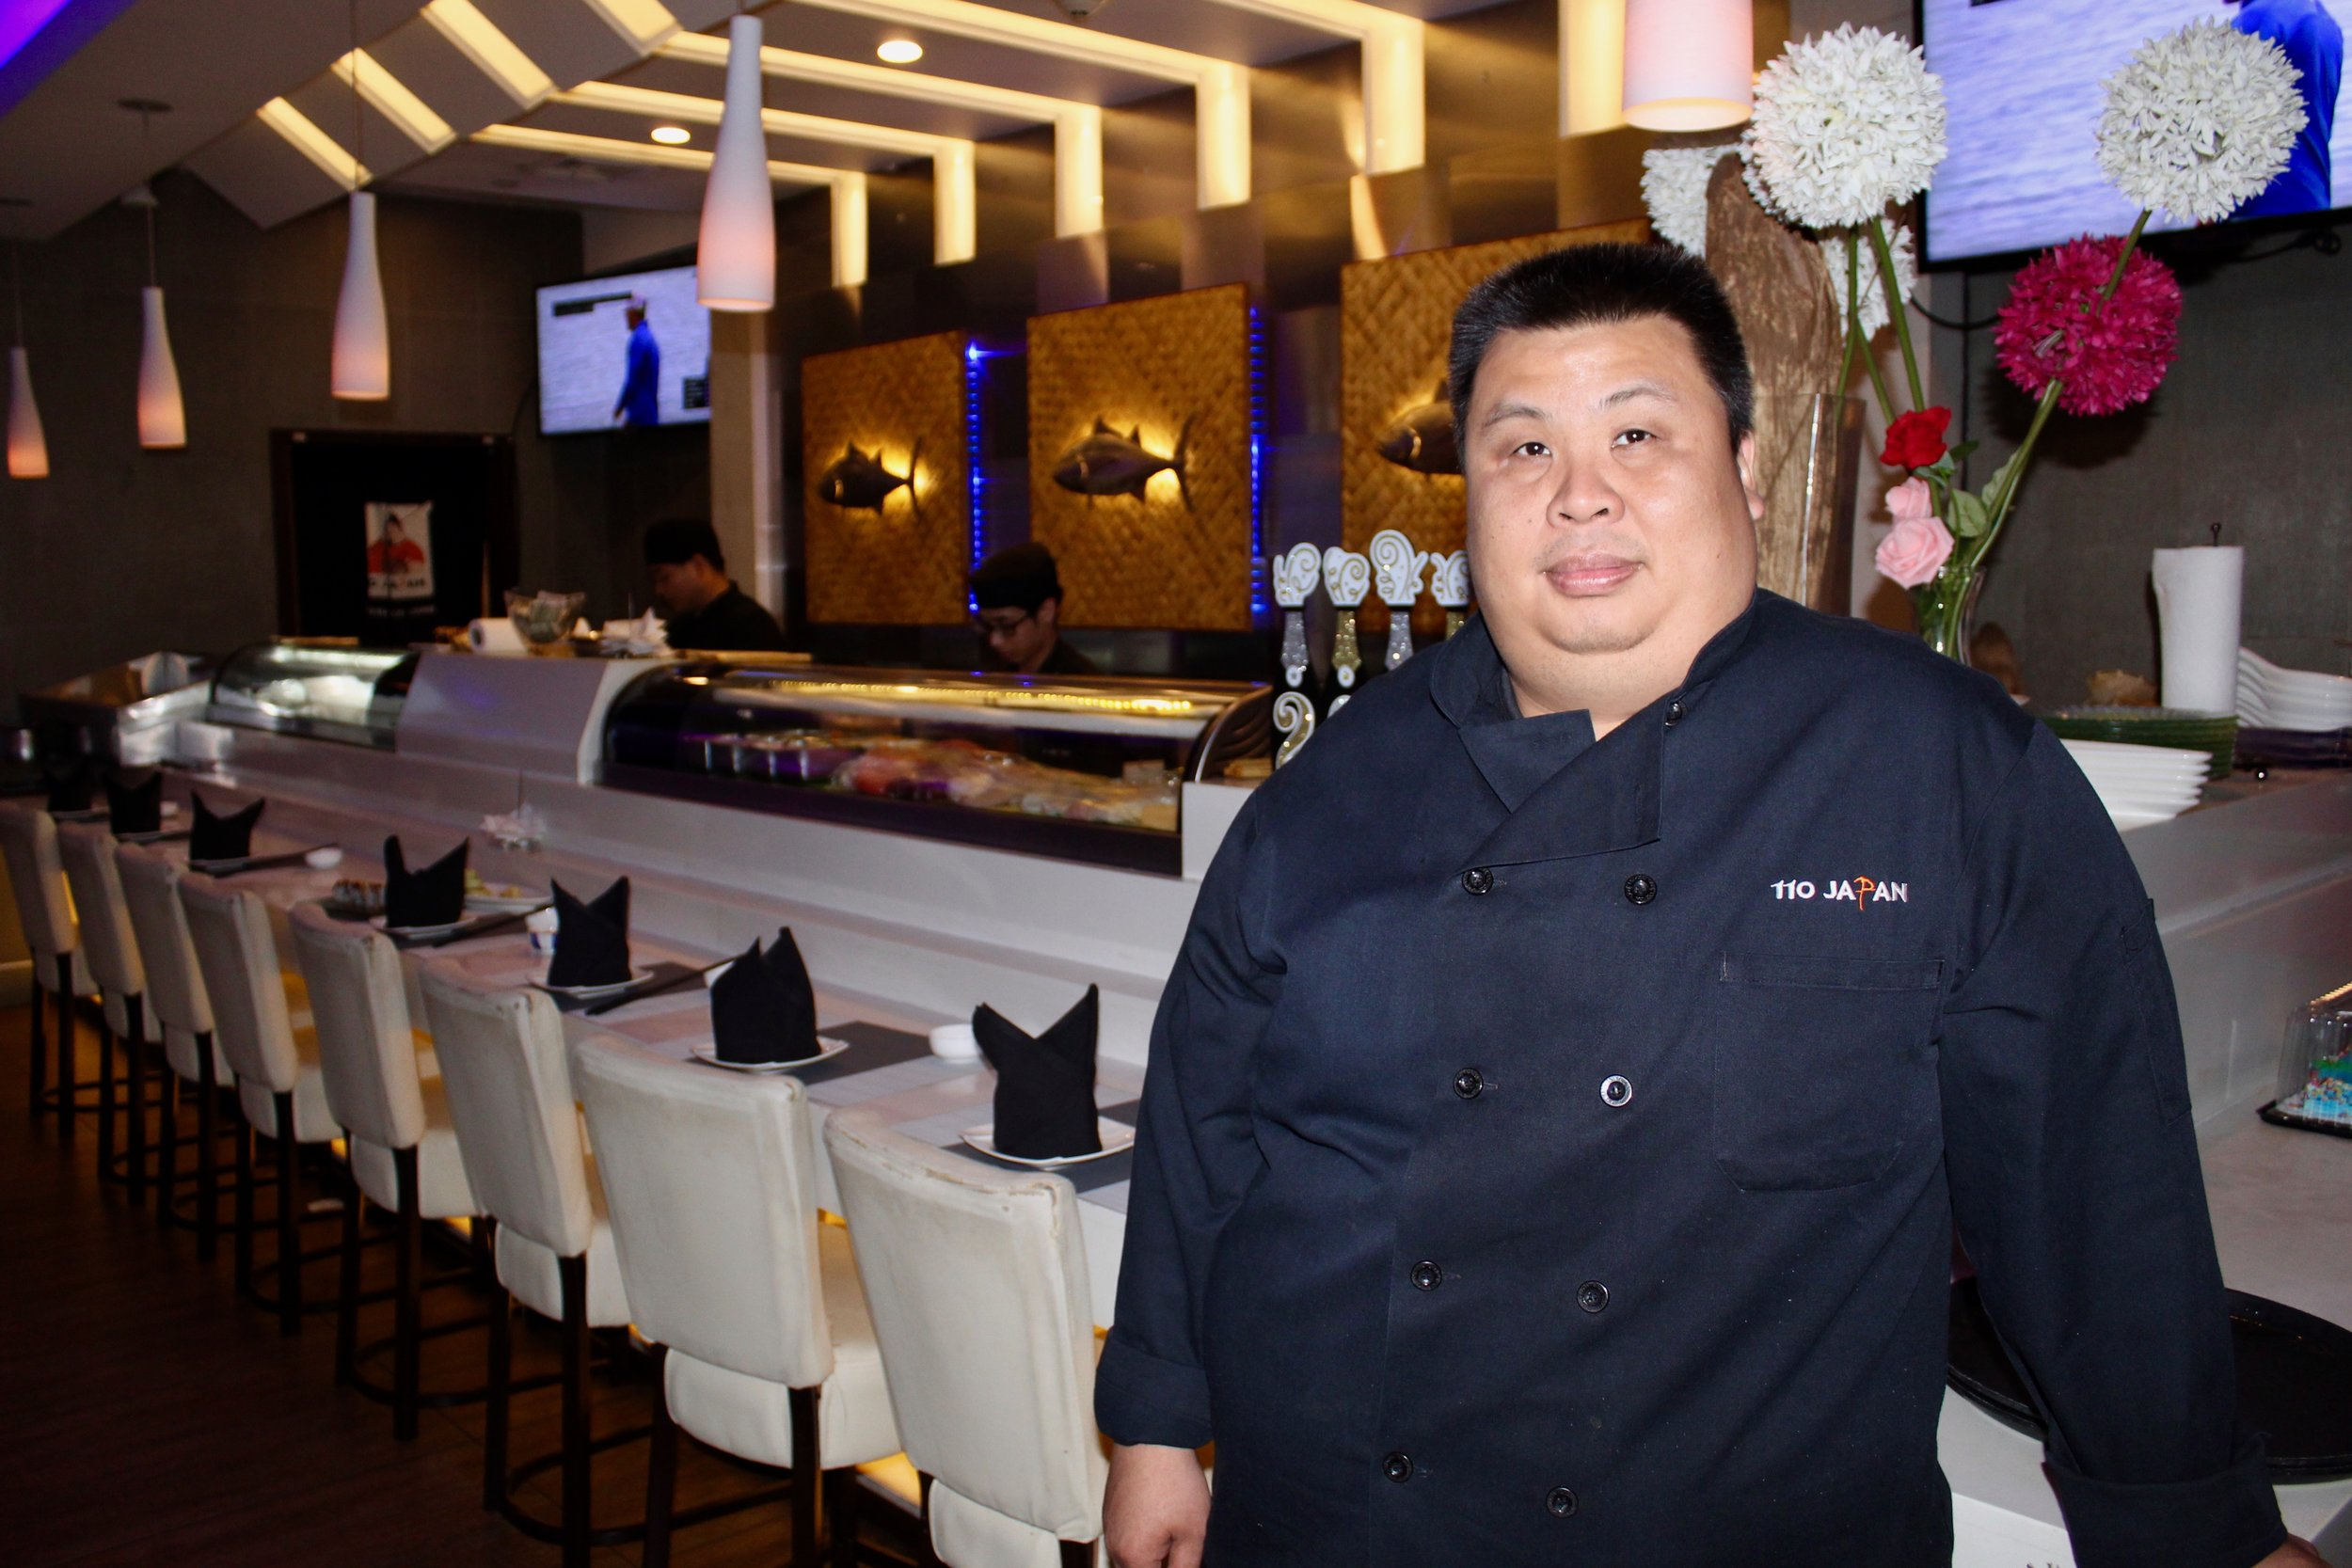 Chef Chee Meng So's fusion dishes pull from his time spent in Malaysia, Japan and Singapore.